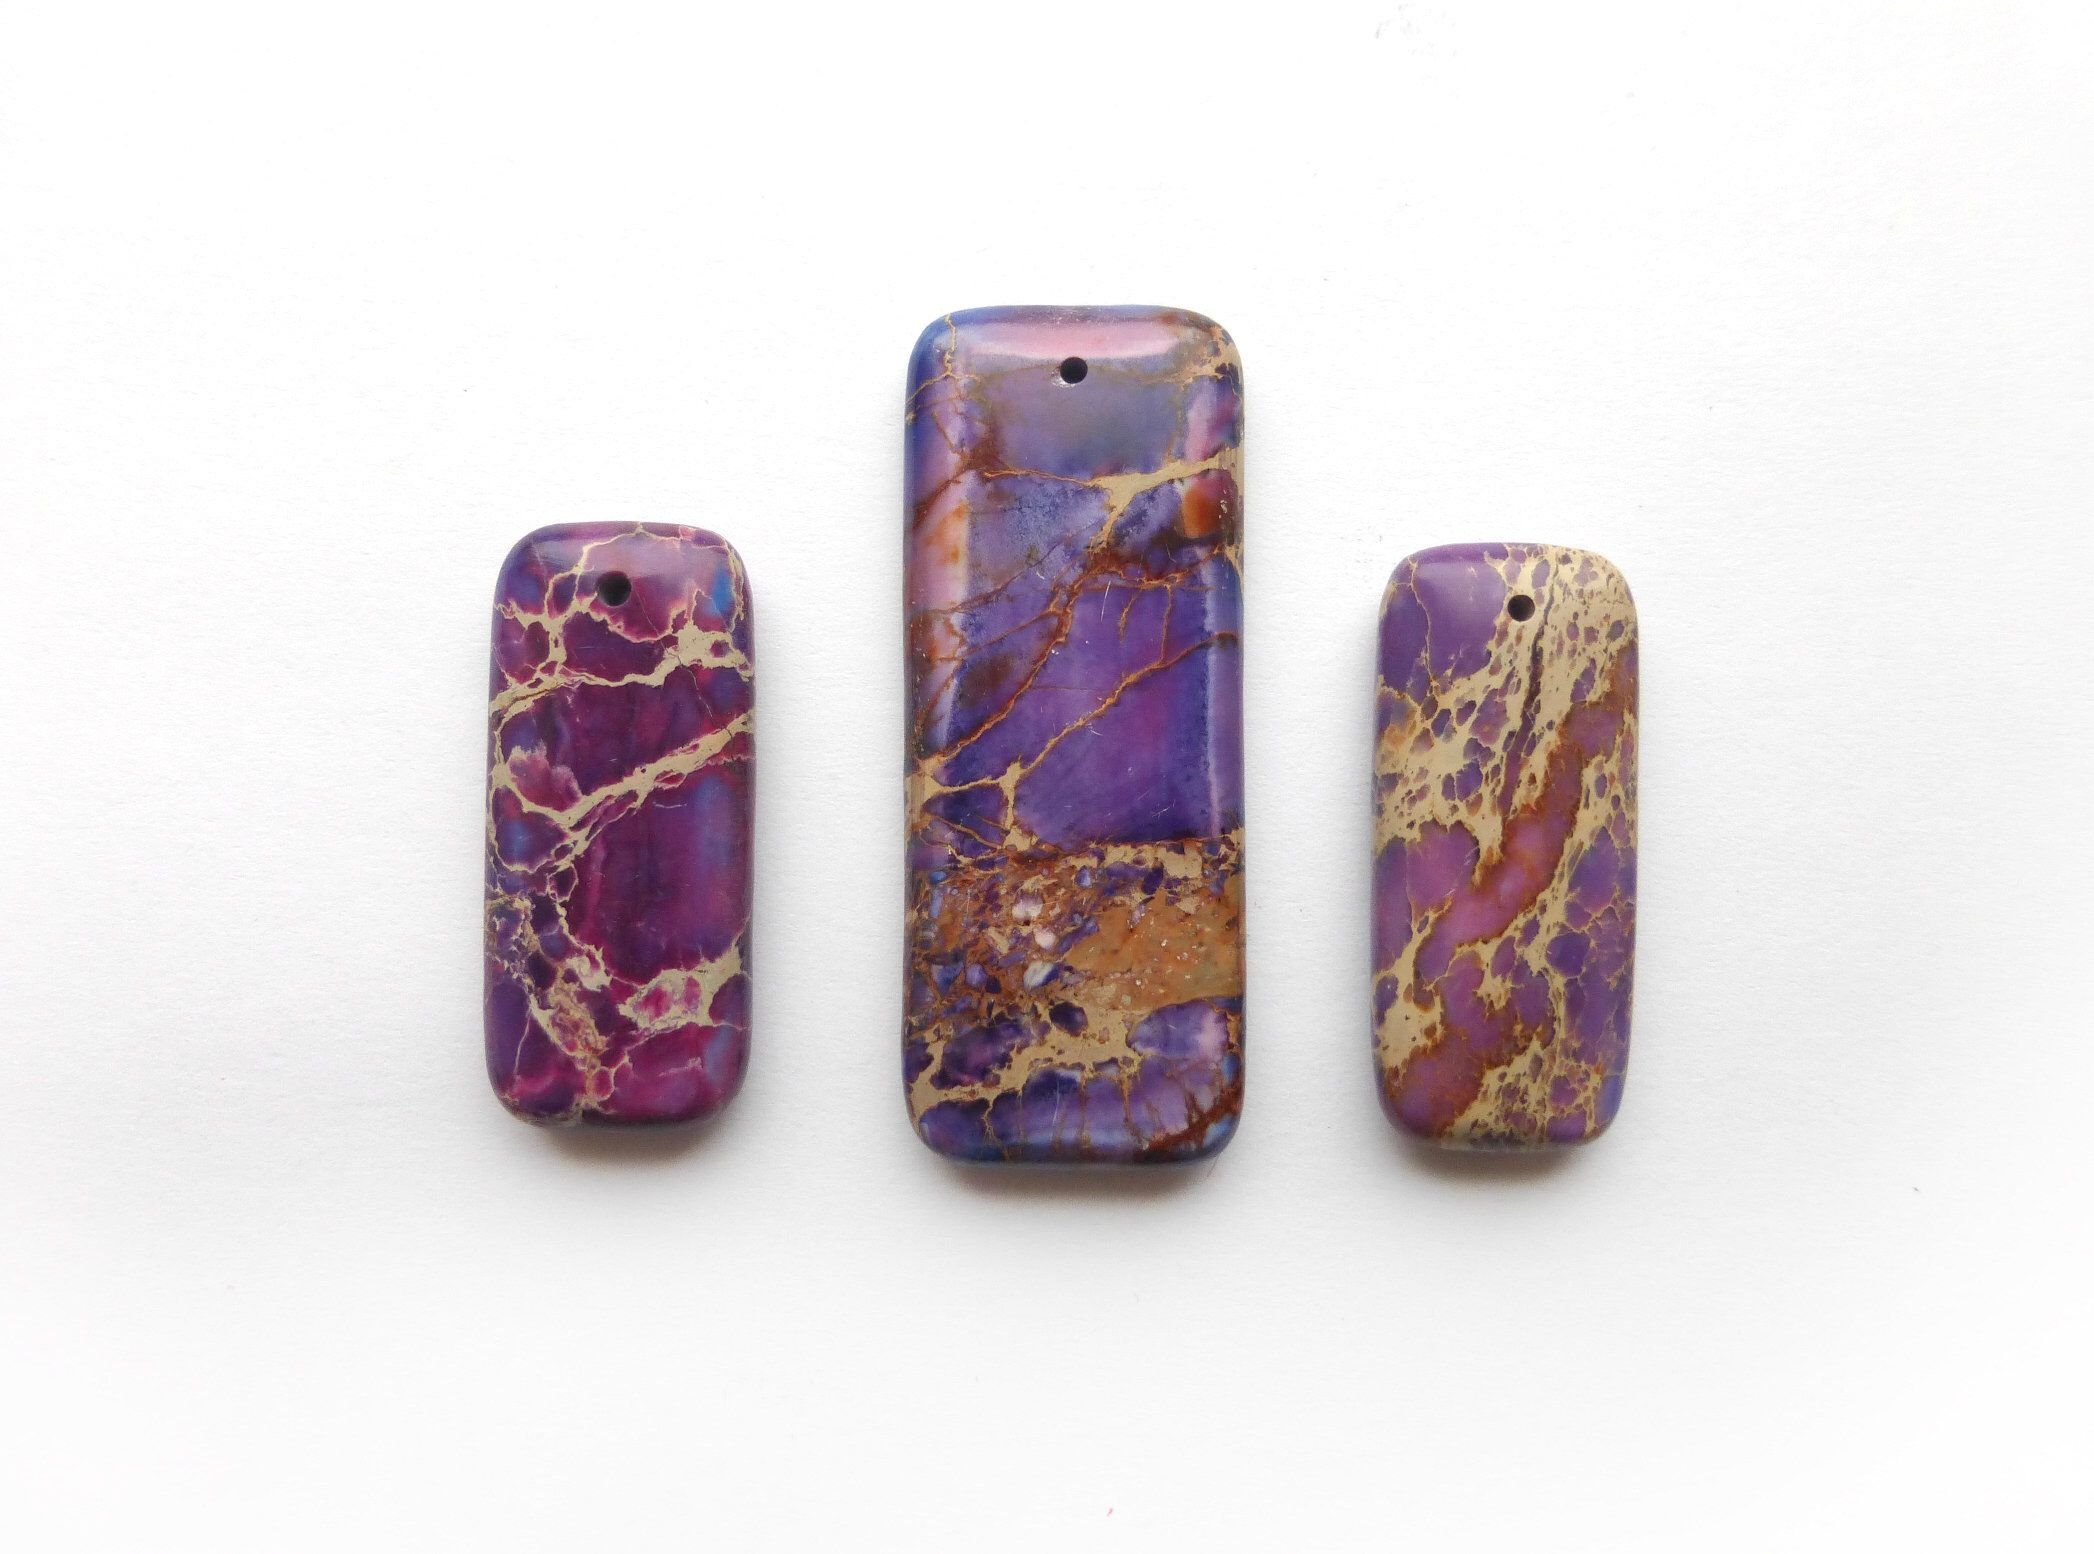 Pcs pendant bead set purple sea sediment jasper rectangle pendant